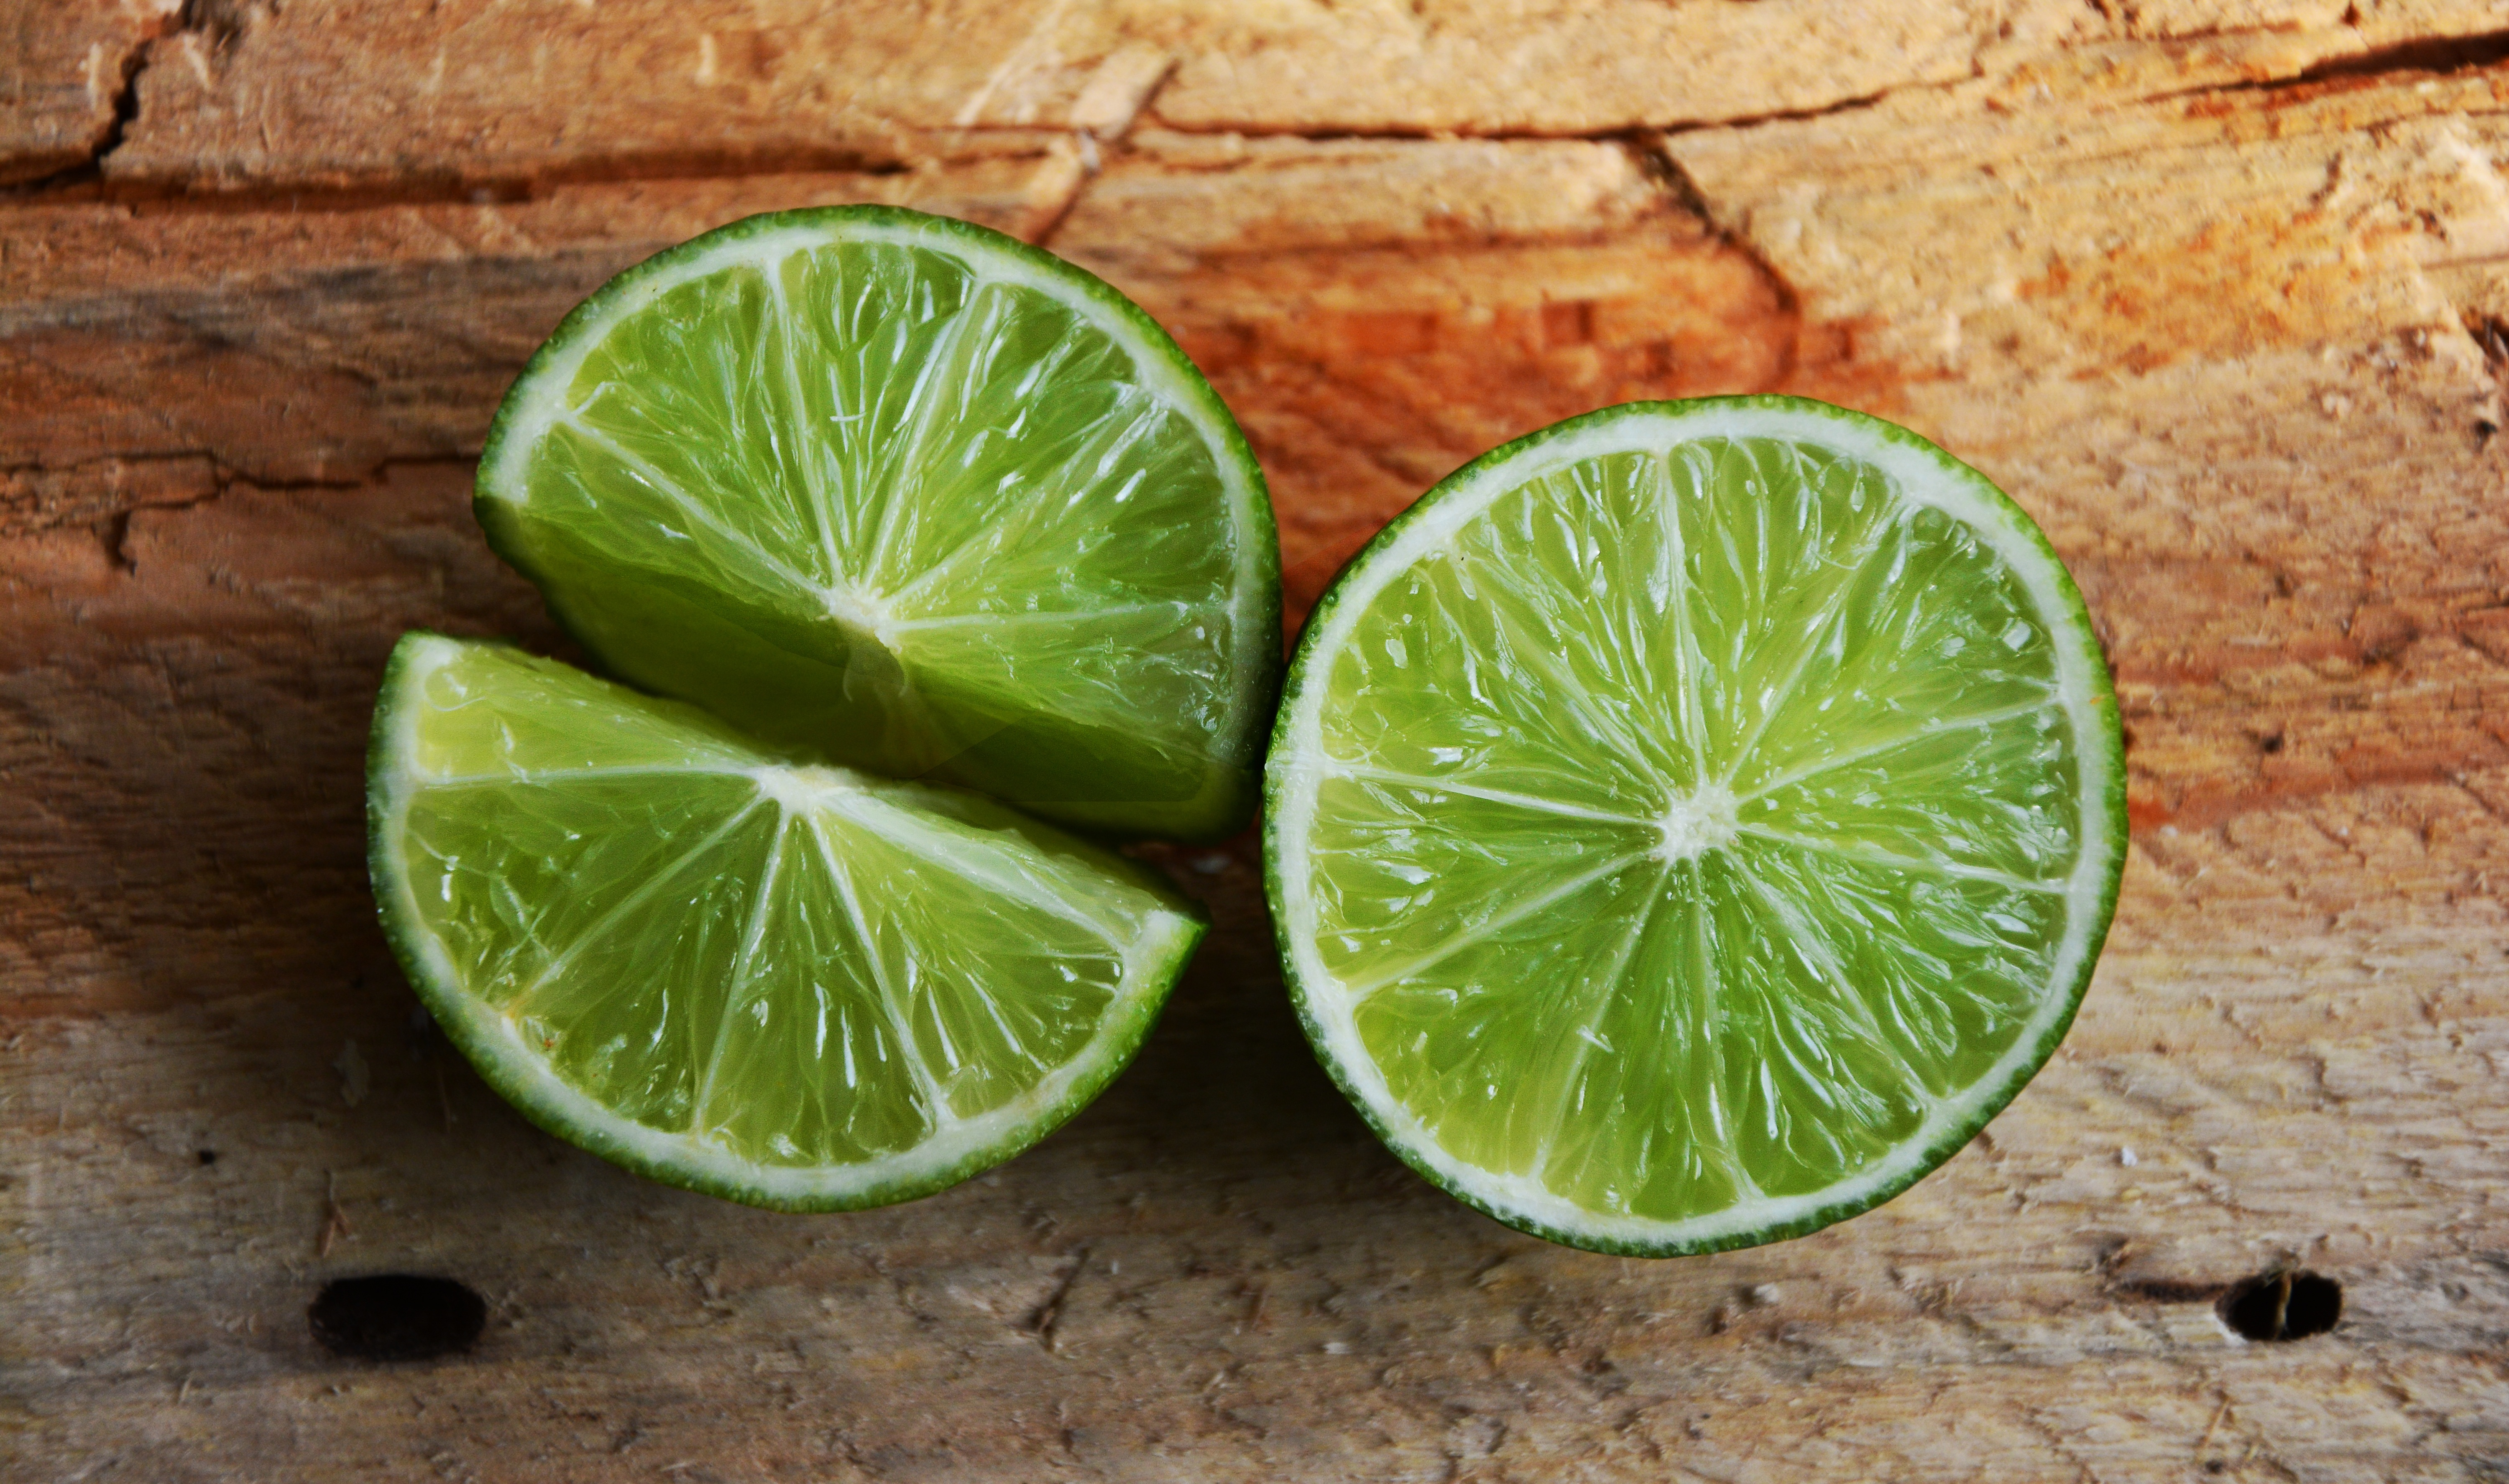 54422 download wallpaper Food, Lime, Fruit, Citrus, Slice, Section screensavers and pictures for free